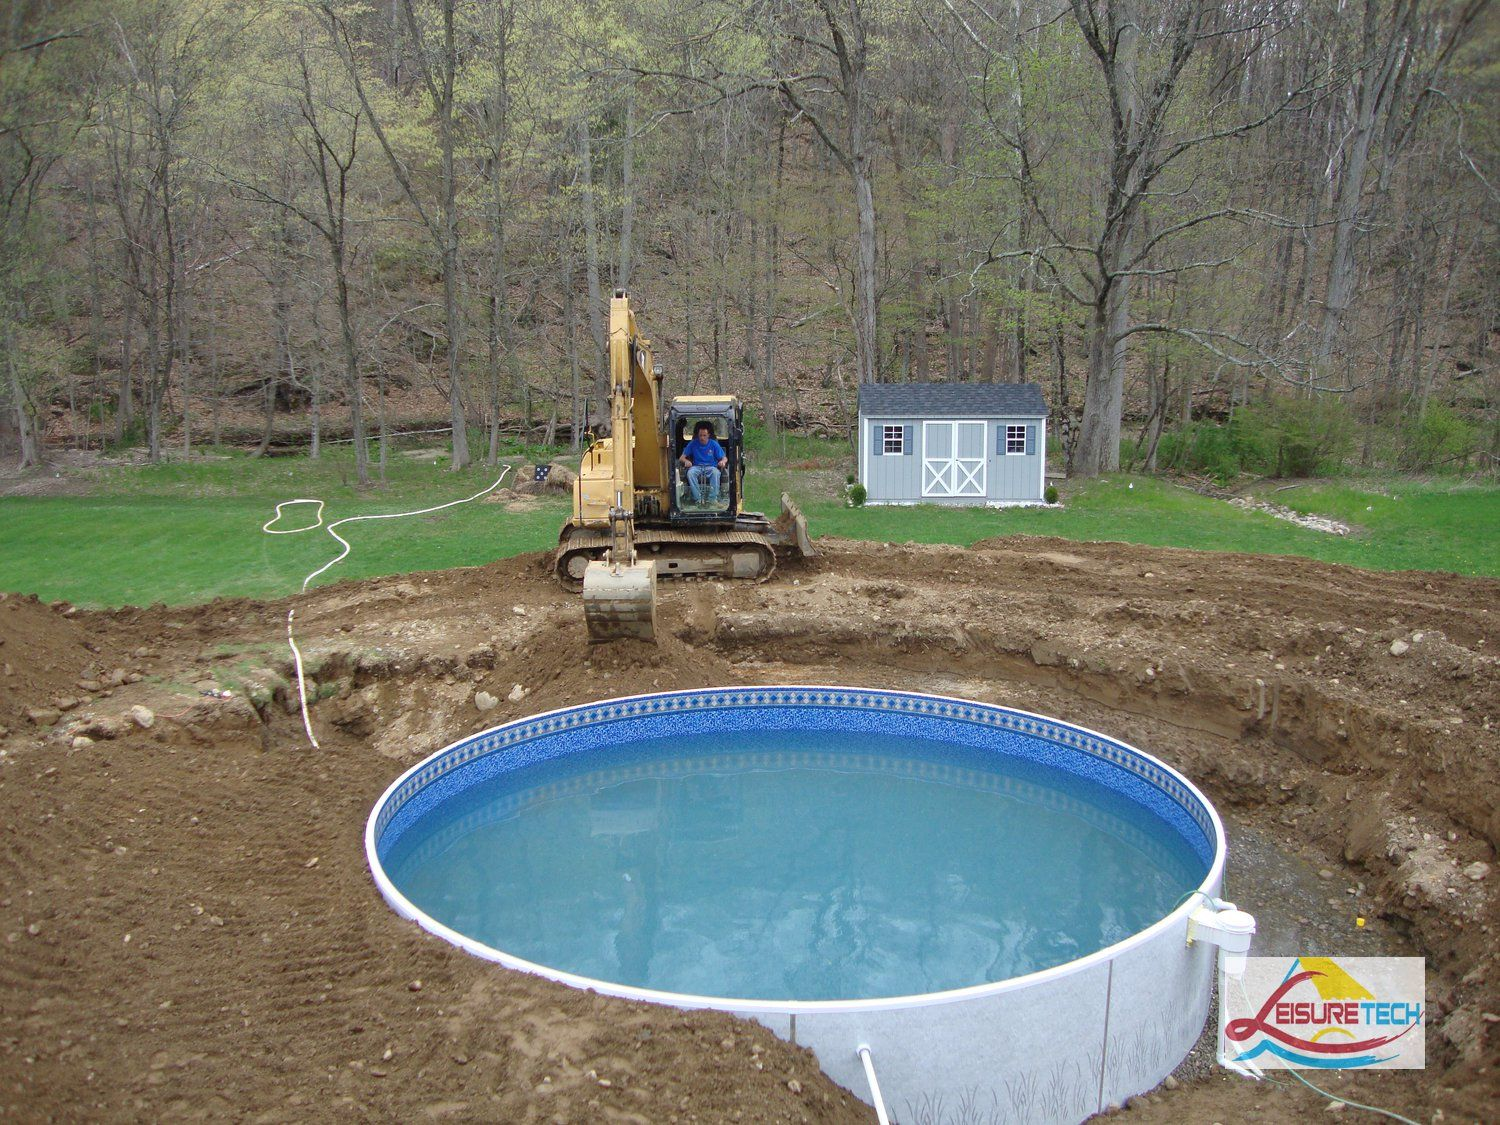 Backyard ideas with above ground pools - Putting Aboveground Pool In The Ground Above Ground Pool Installation Supplies Quality And